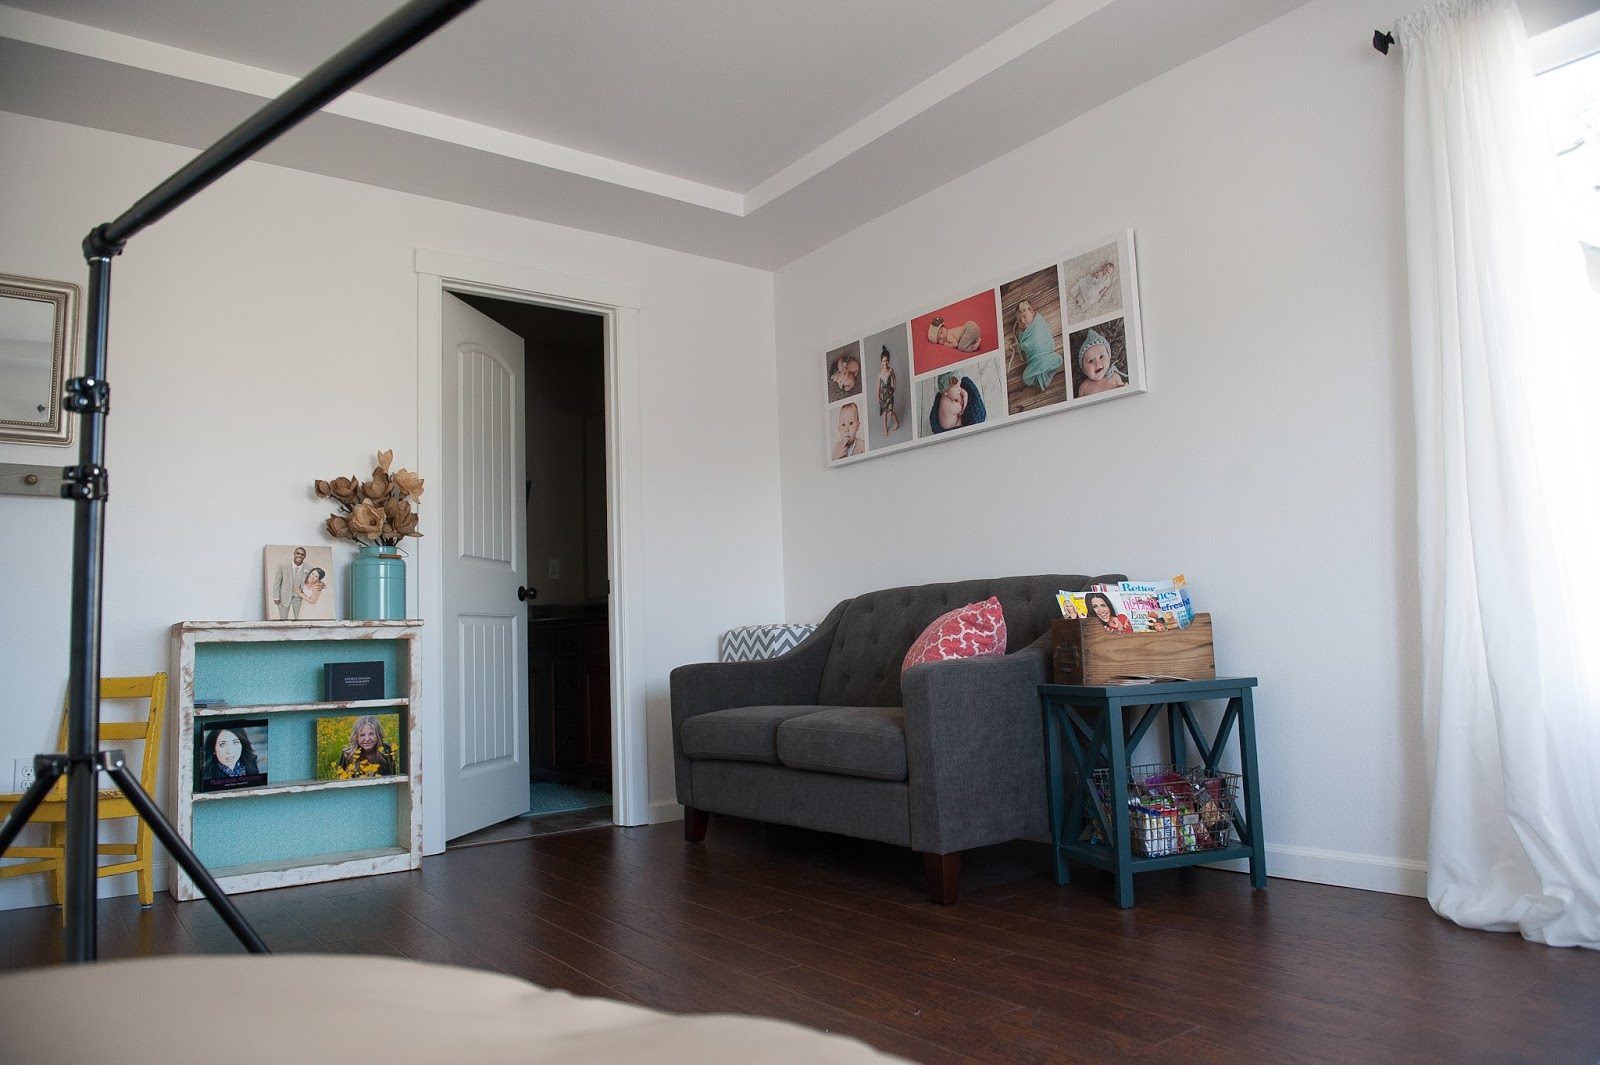 White Walls, Hardwood Floors, Gray Love Seat, and colorful accents